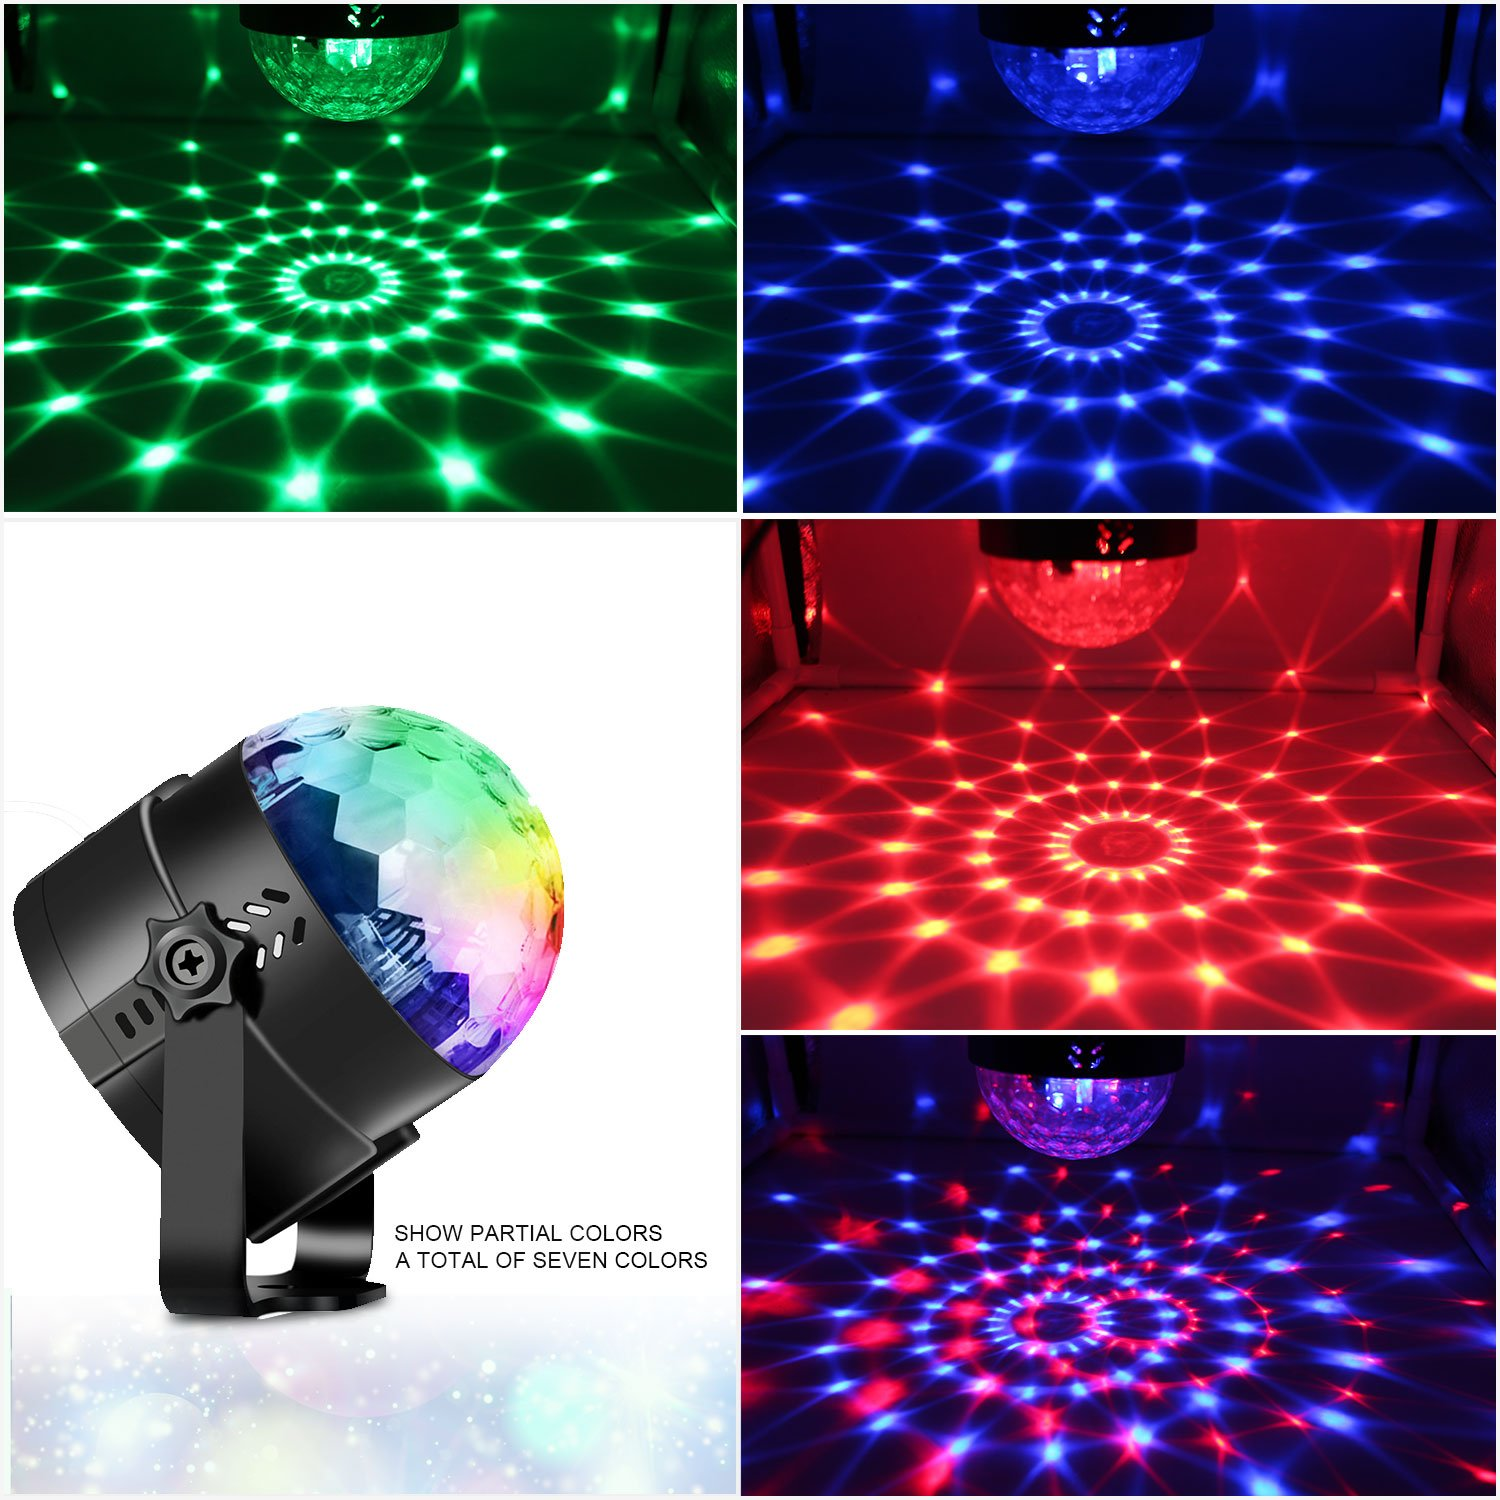 Spriak Disco Ball Party Lights 3rd Generation Strobe Light 3W DJ Dance Lights Sound Activated Portable Stage Light for Xmas Halloween Kids Birthday Party (with USB) by Spriak (Image #2)